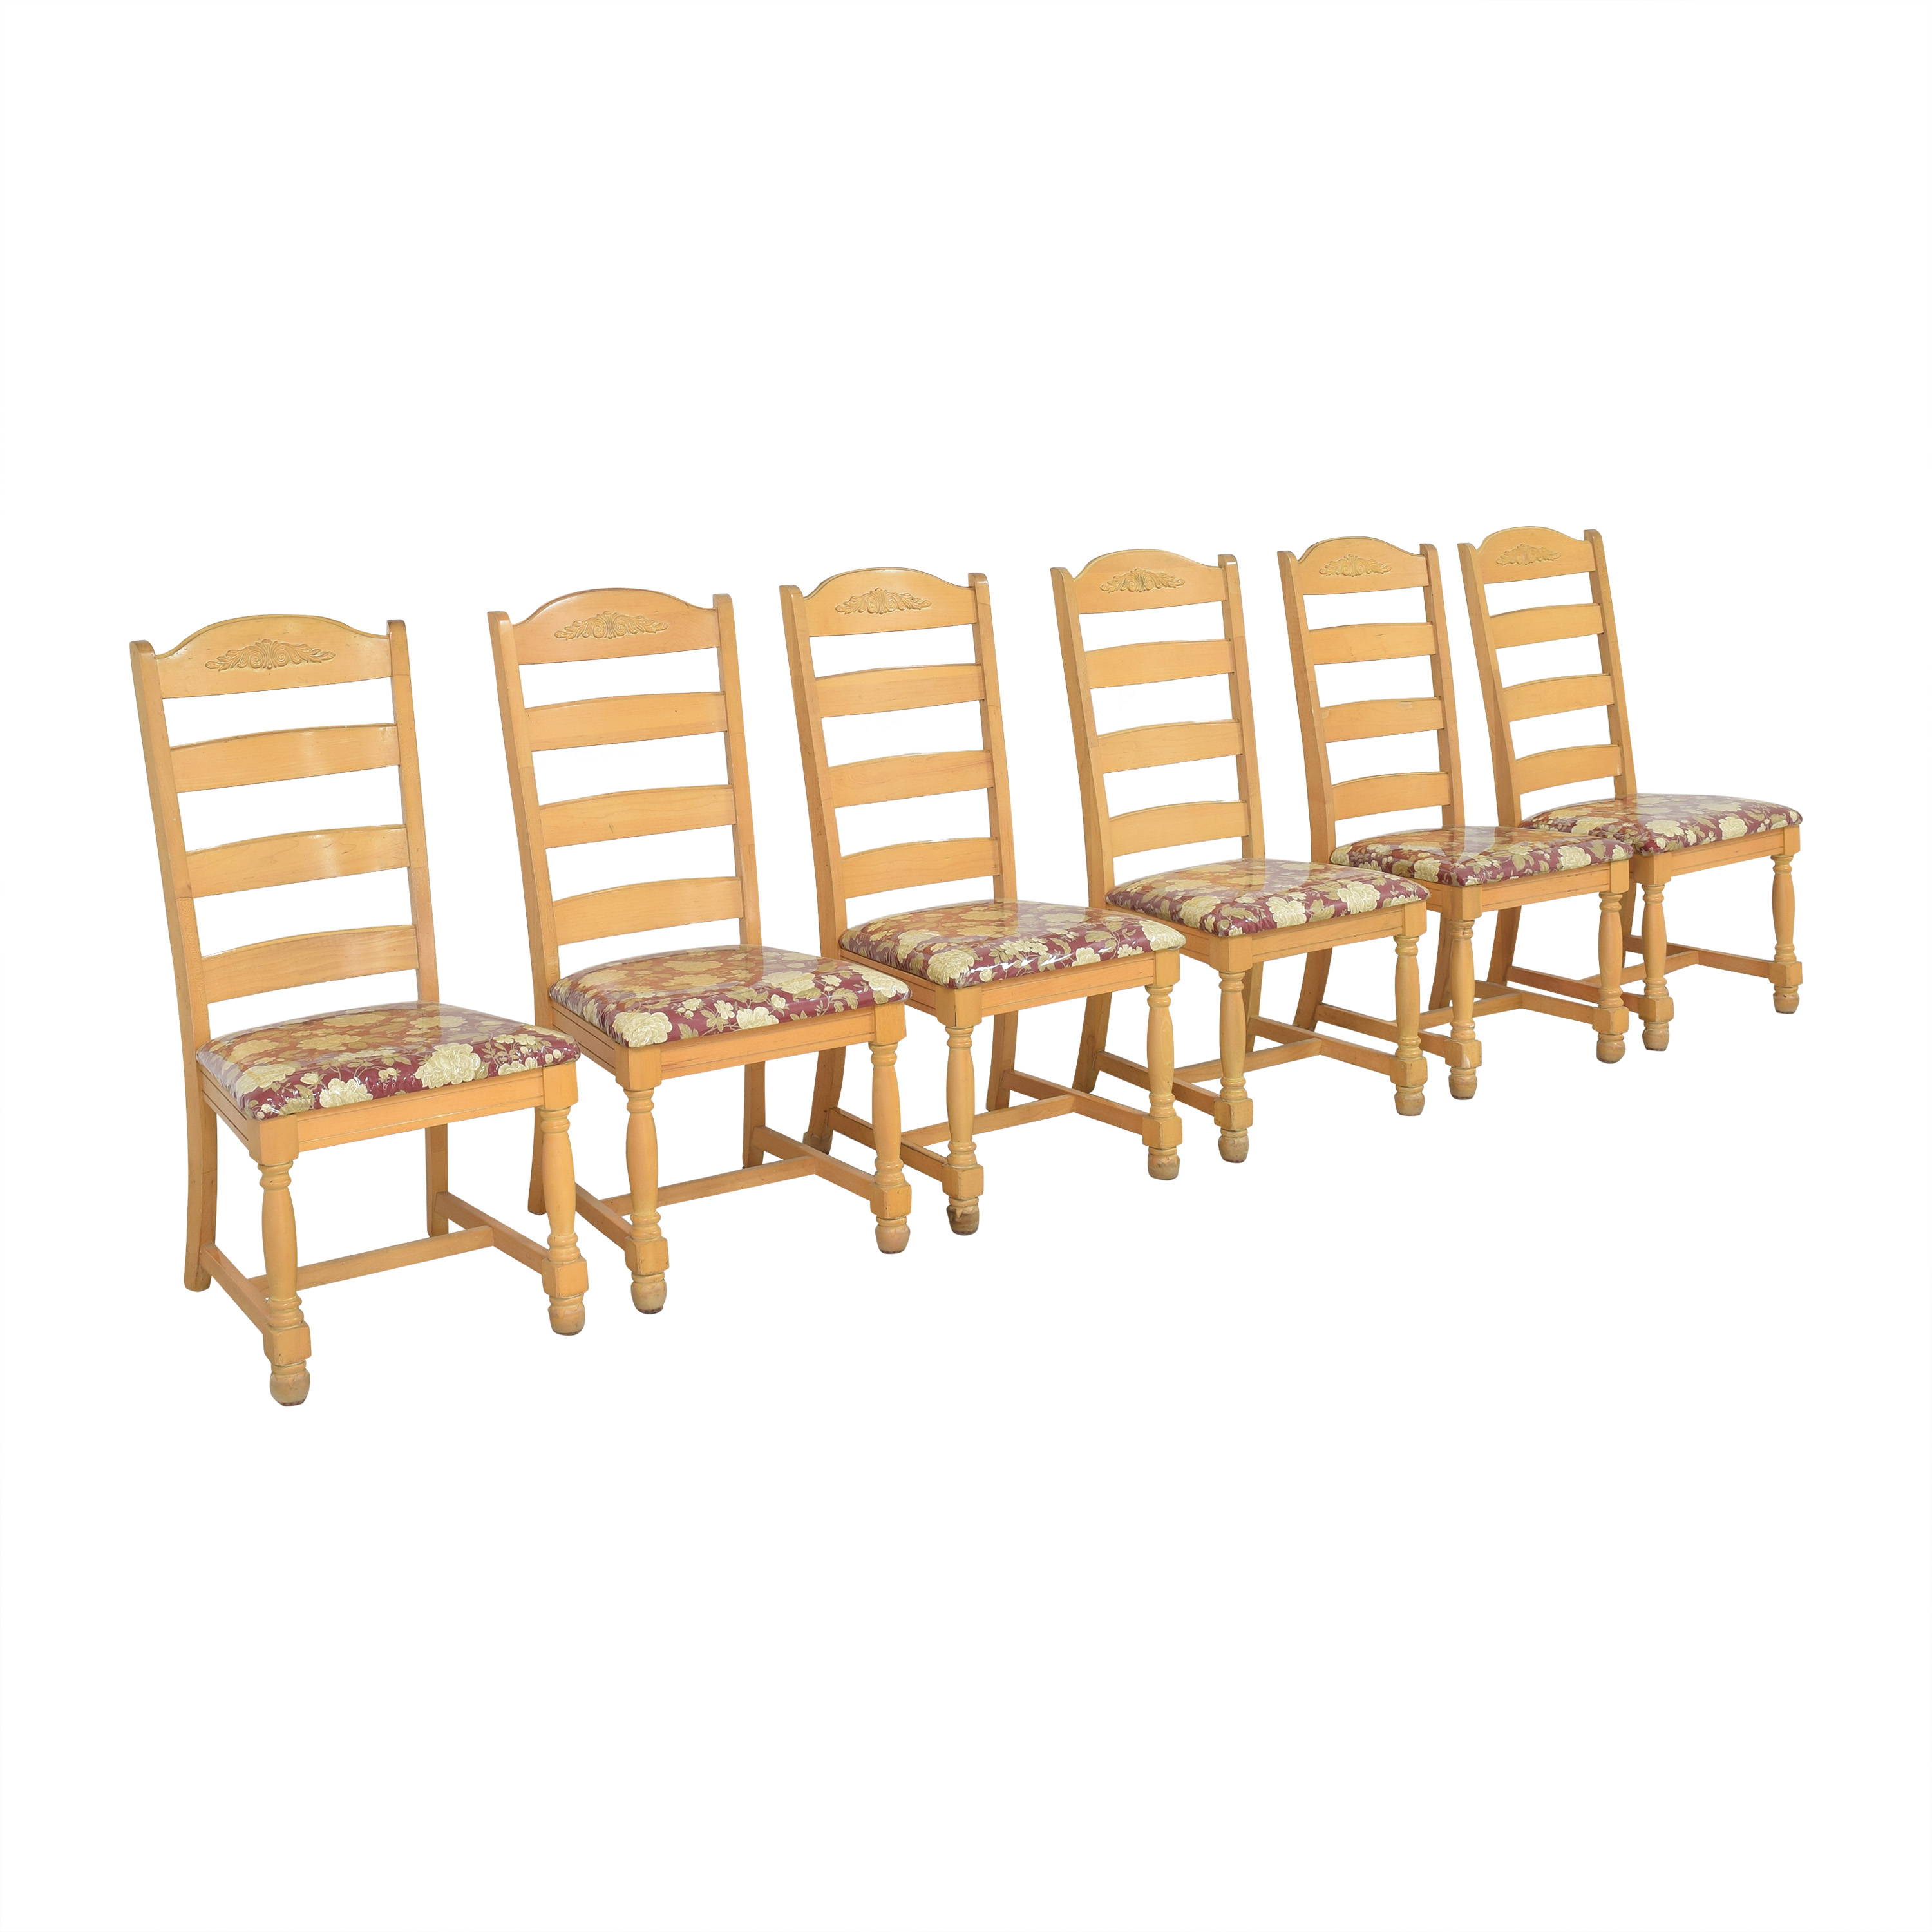 58 off broyhill furniture broyhill ladderback dining chairs chairs